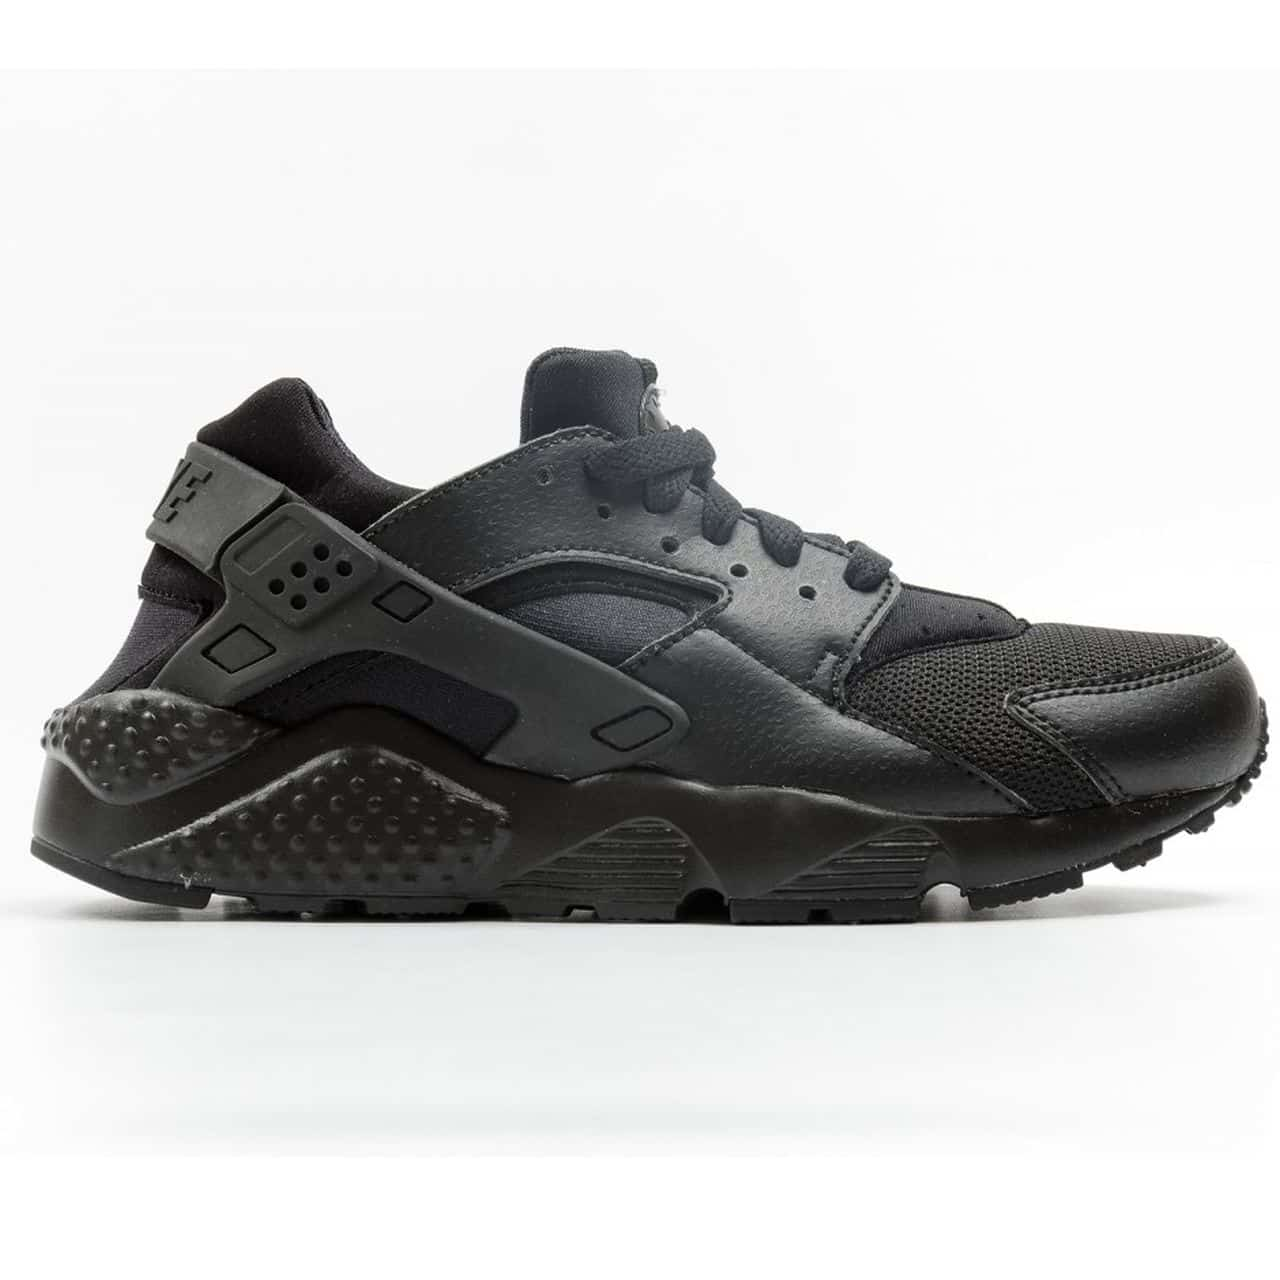 ADIDASI ORIGINALI NIKE HUARACHE RUN (GS) - 654275 016